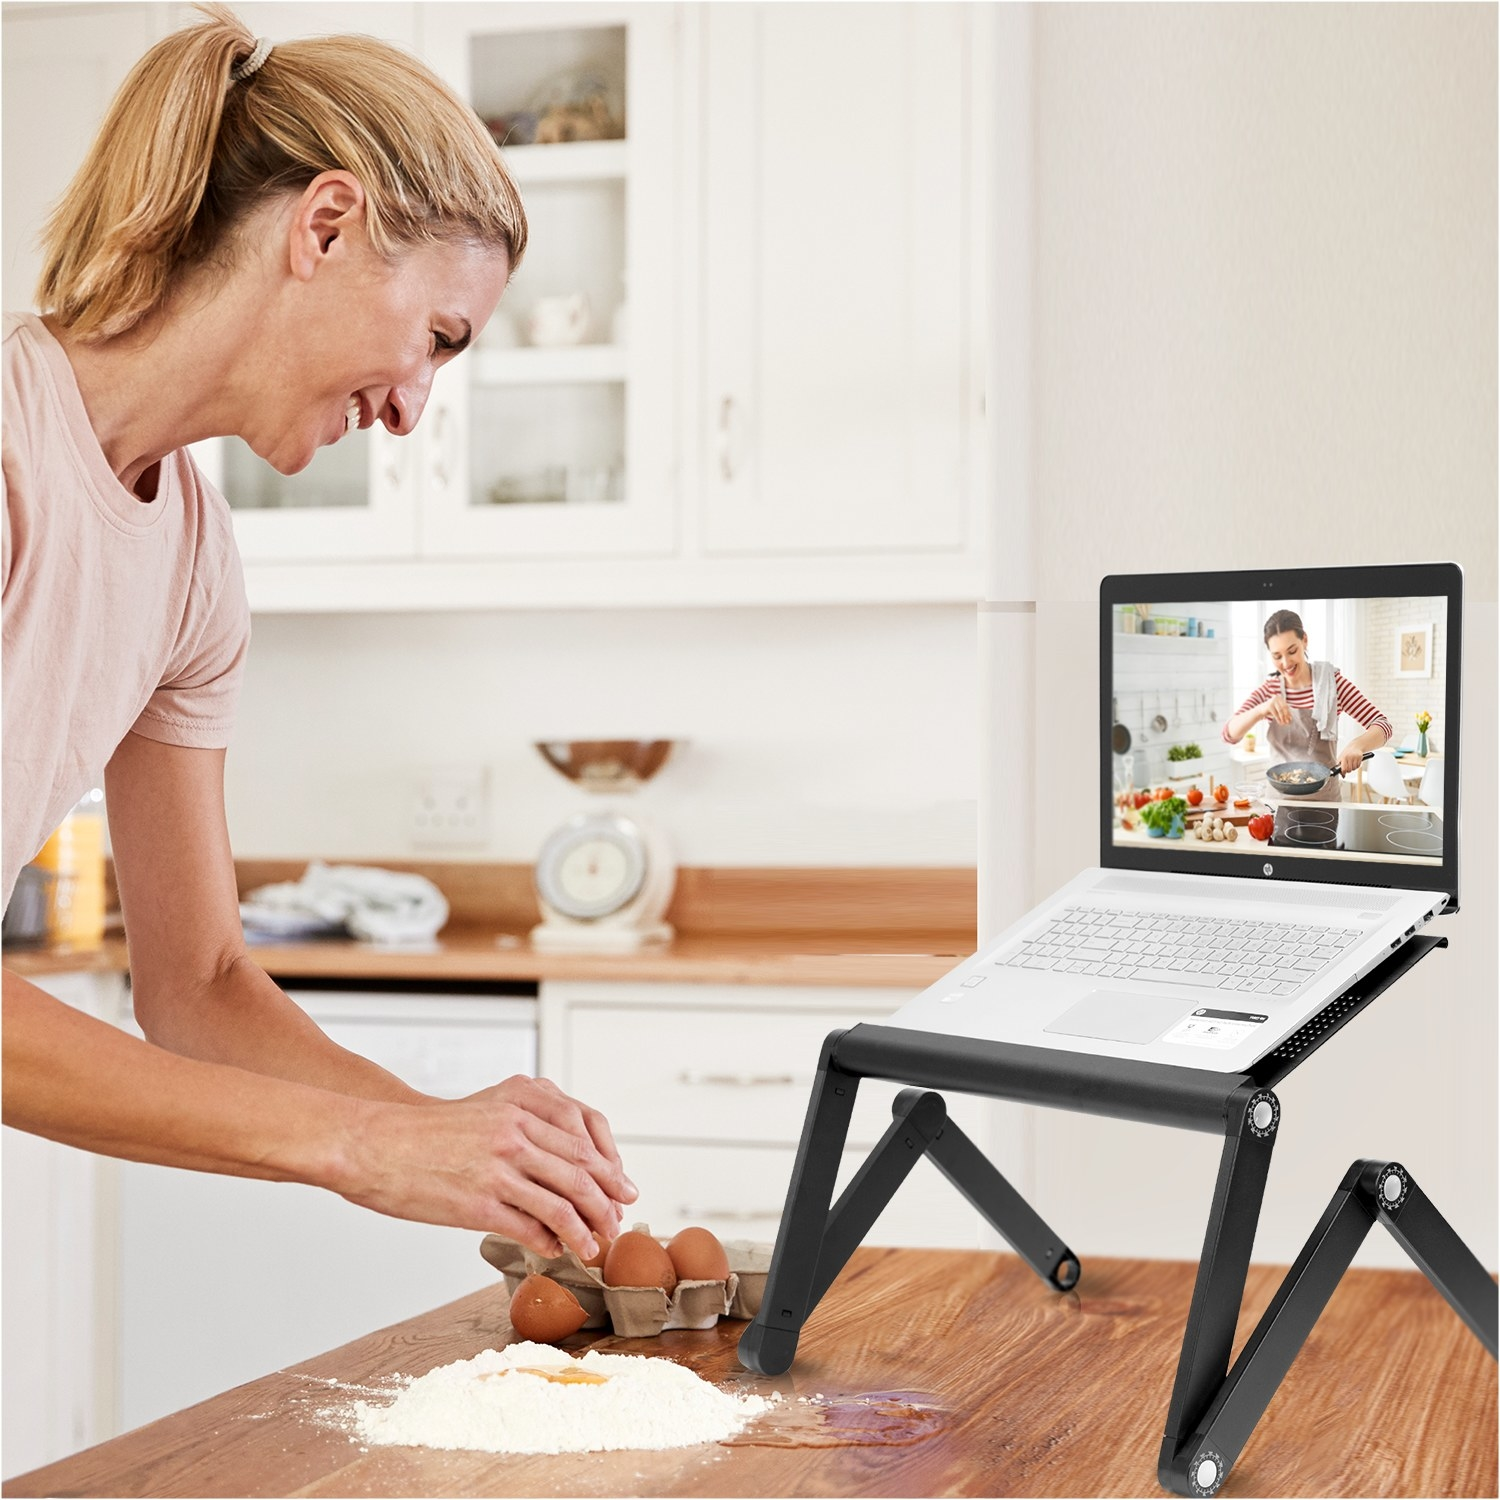 A person using the laptop stand for her computer while taking a baking class